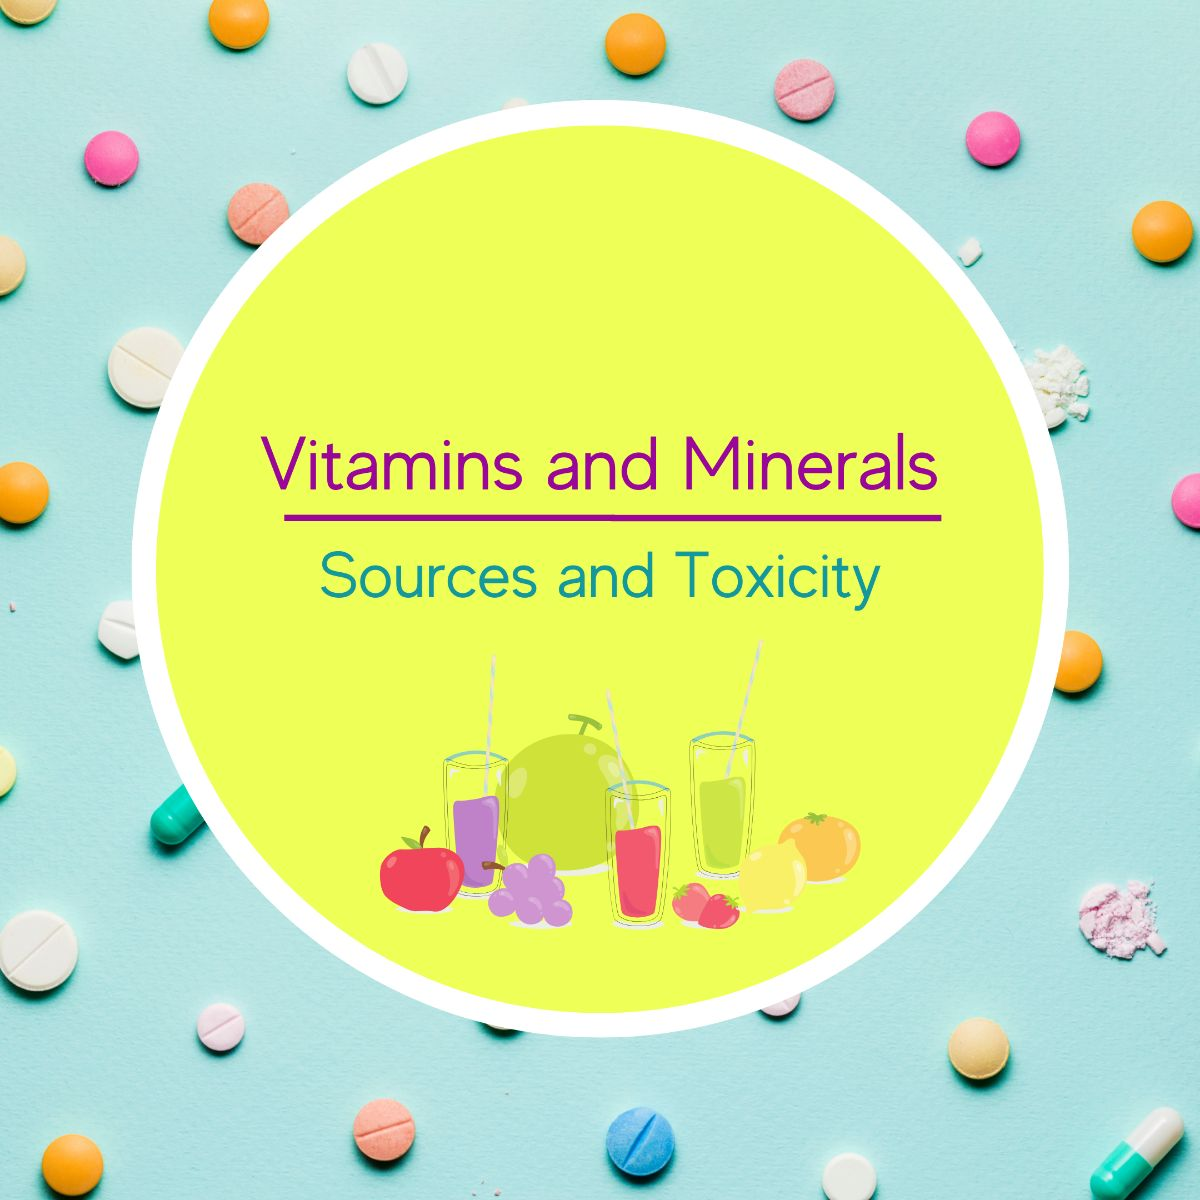 All Vitamins and Minerals, sources and deficiencies